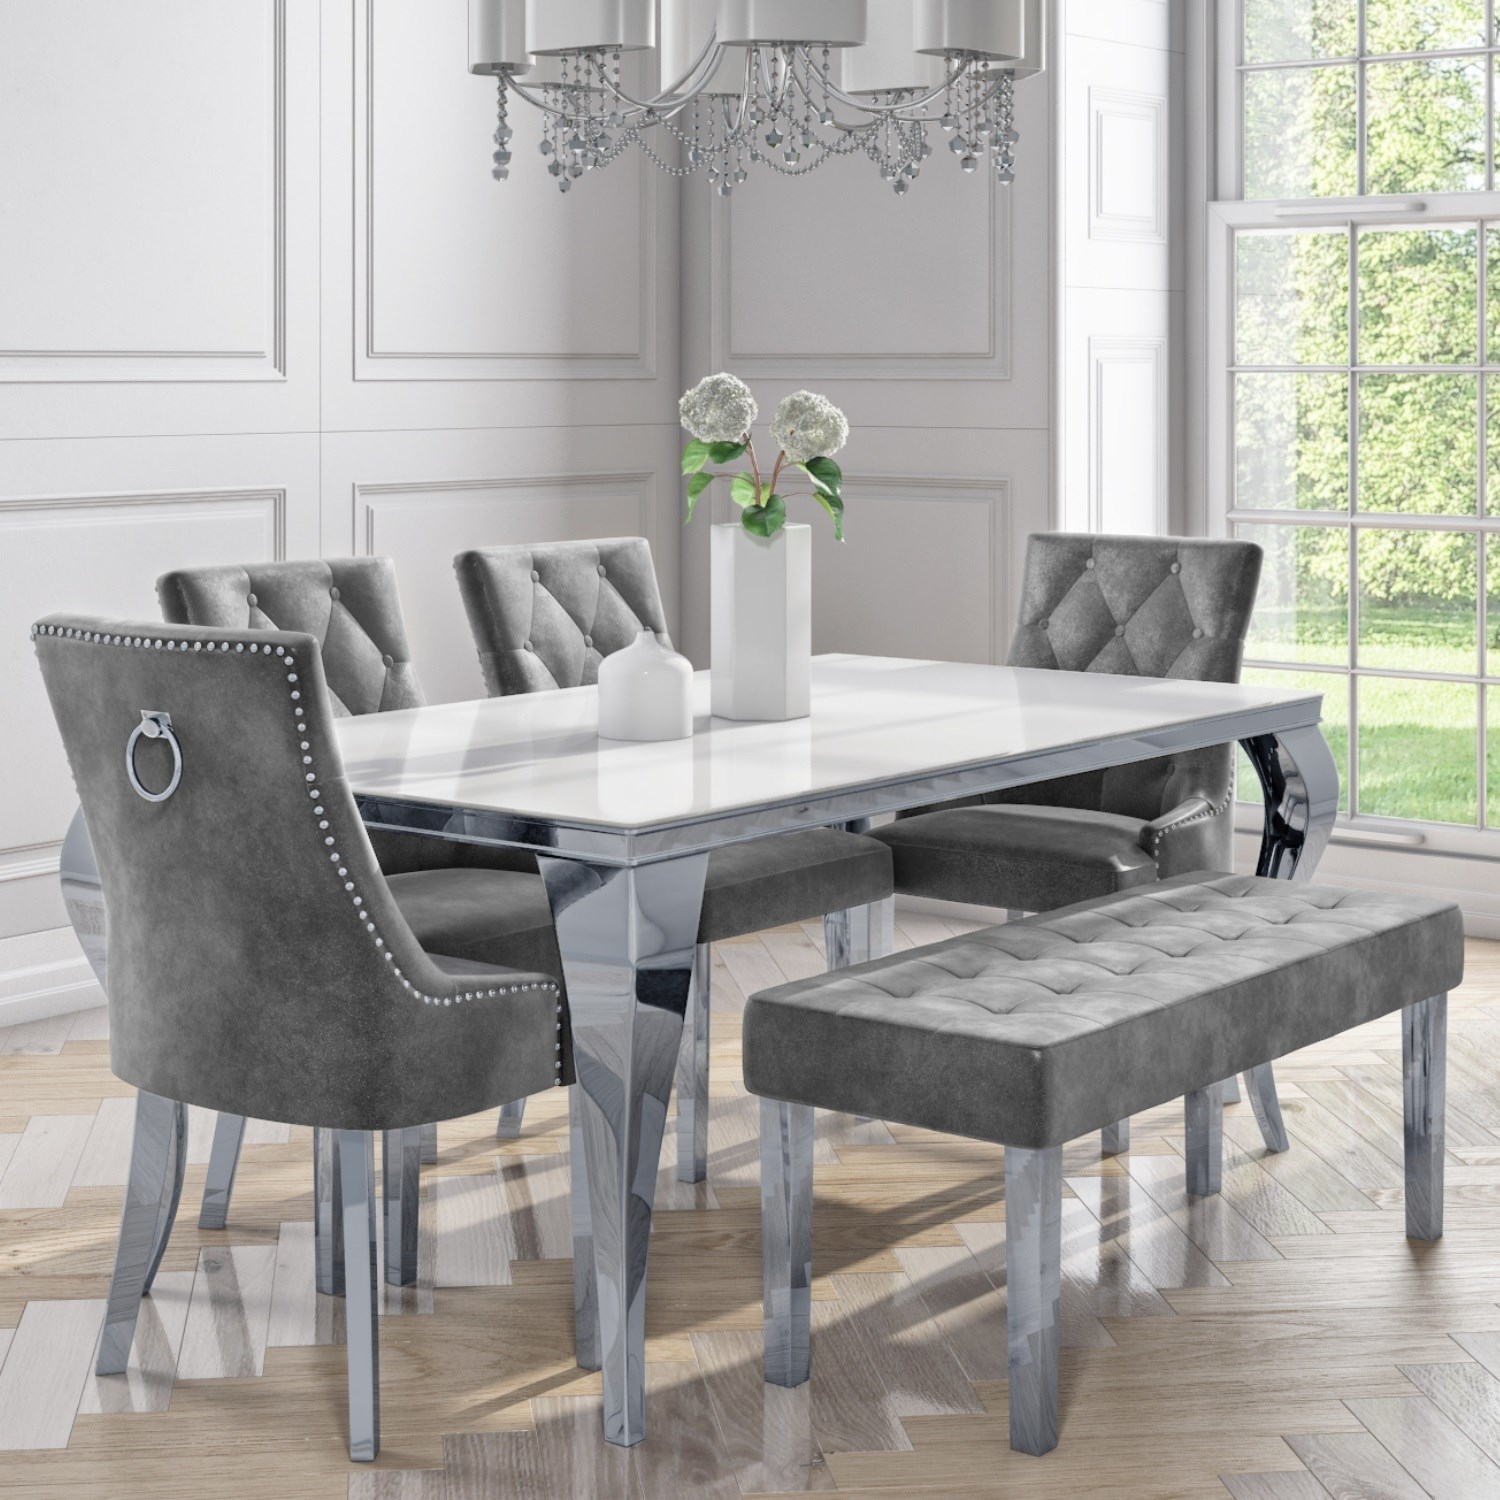 Picture of: 6 Seater Dining Set With White Table 4 Grey Velvet Chairs And 1 Bench Jade Boutique Furniture123